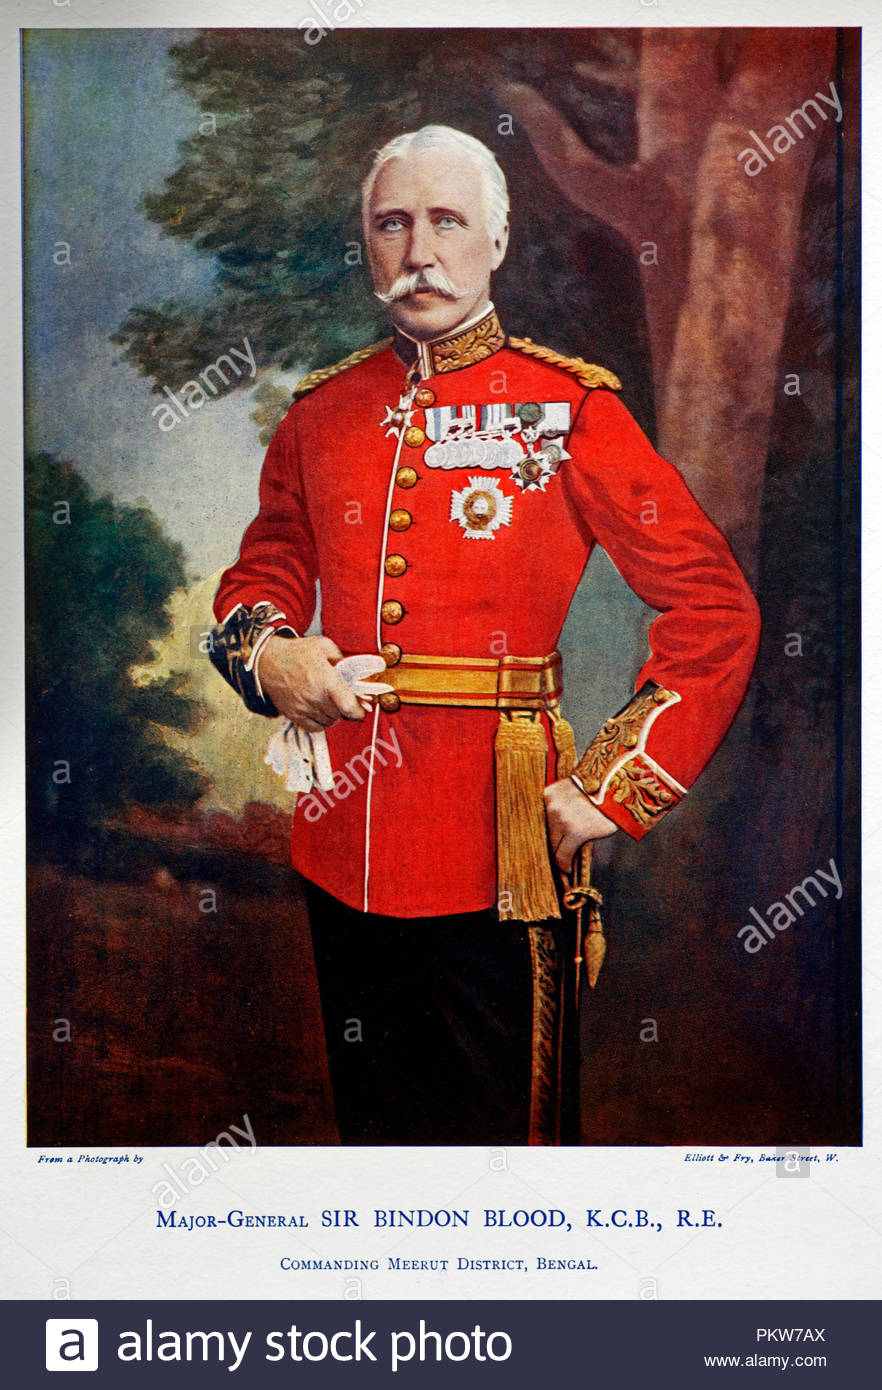 Major-General Sir Bindon Blood, GCB, GCVO, 1842 – 1940, was a British Army commander who served in Egypt, Afghanistan, India and Southern Africa. Colour illustration from 1900 - Stock Image